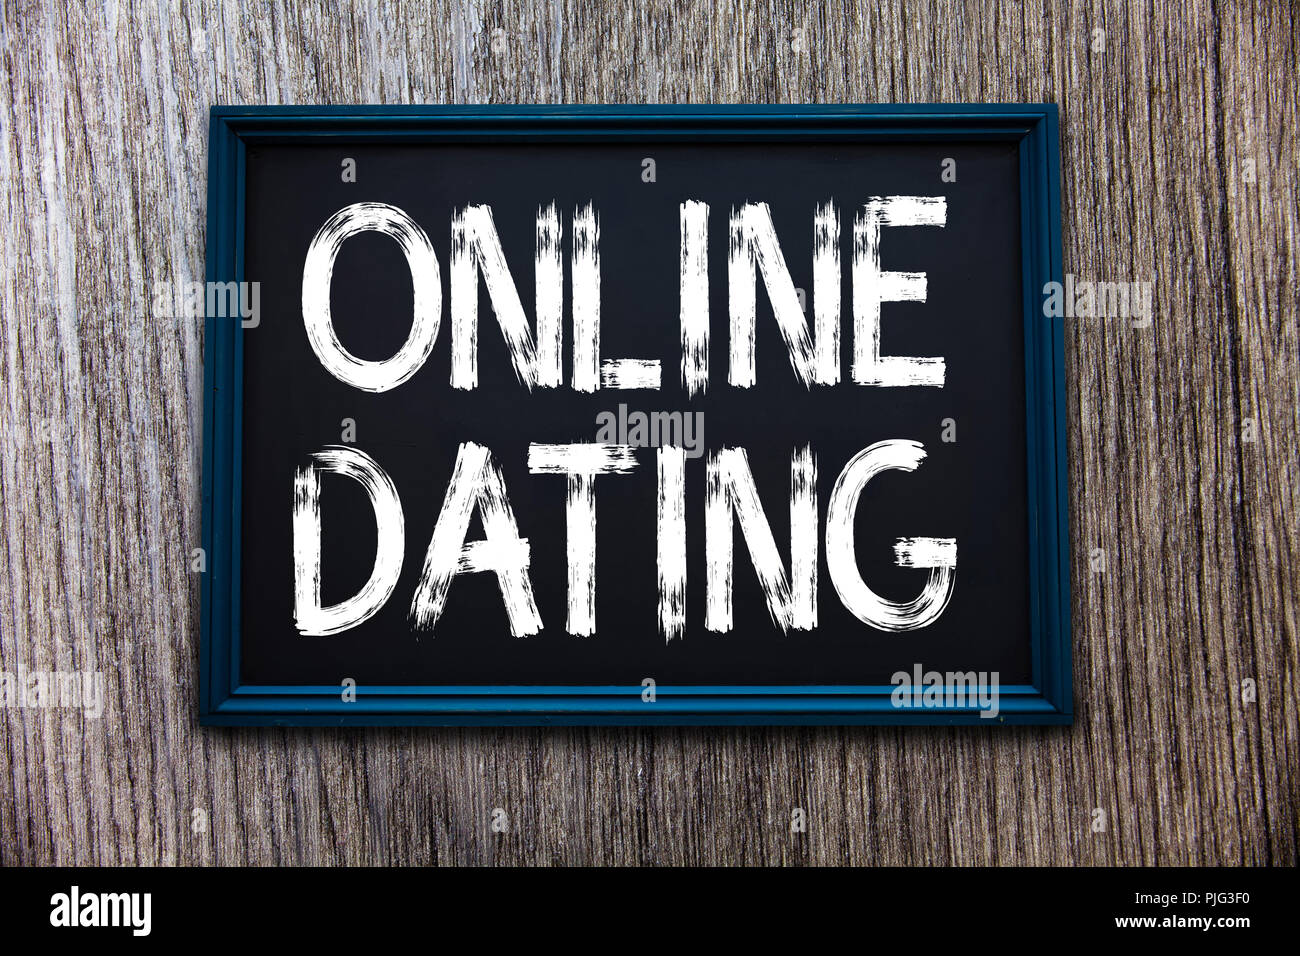 Online dating significado